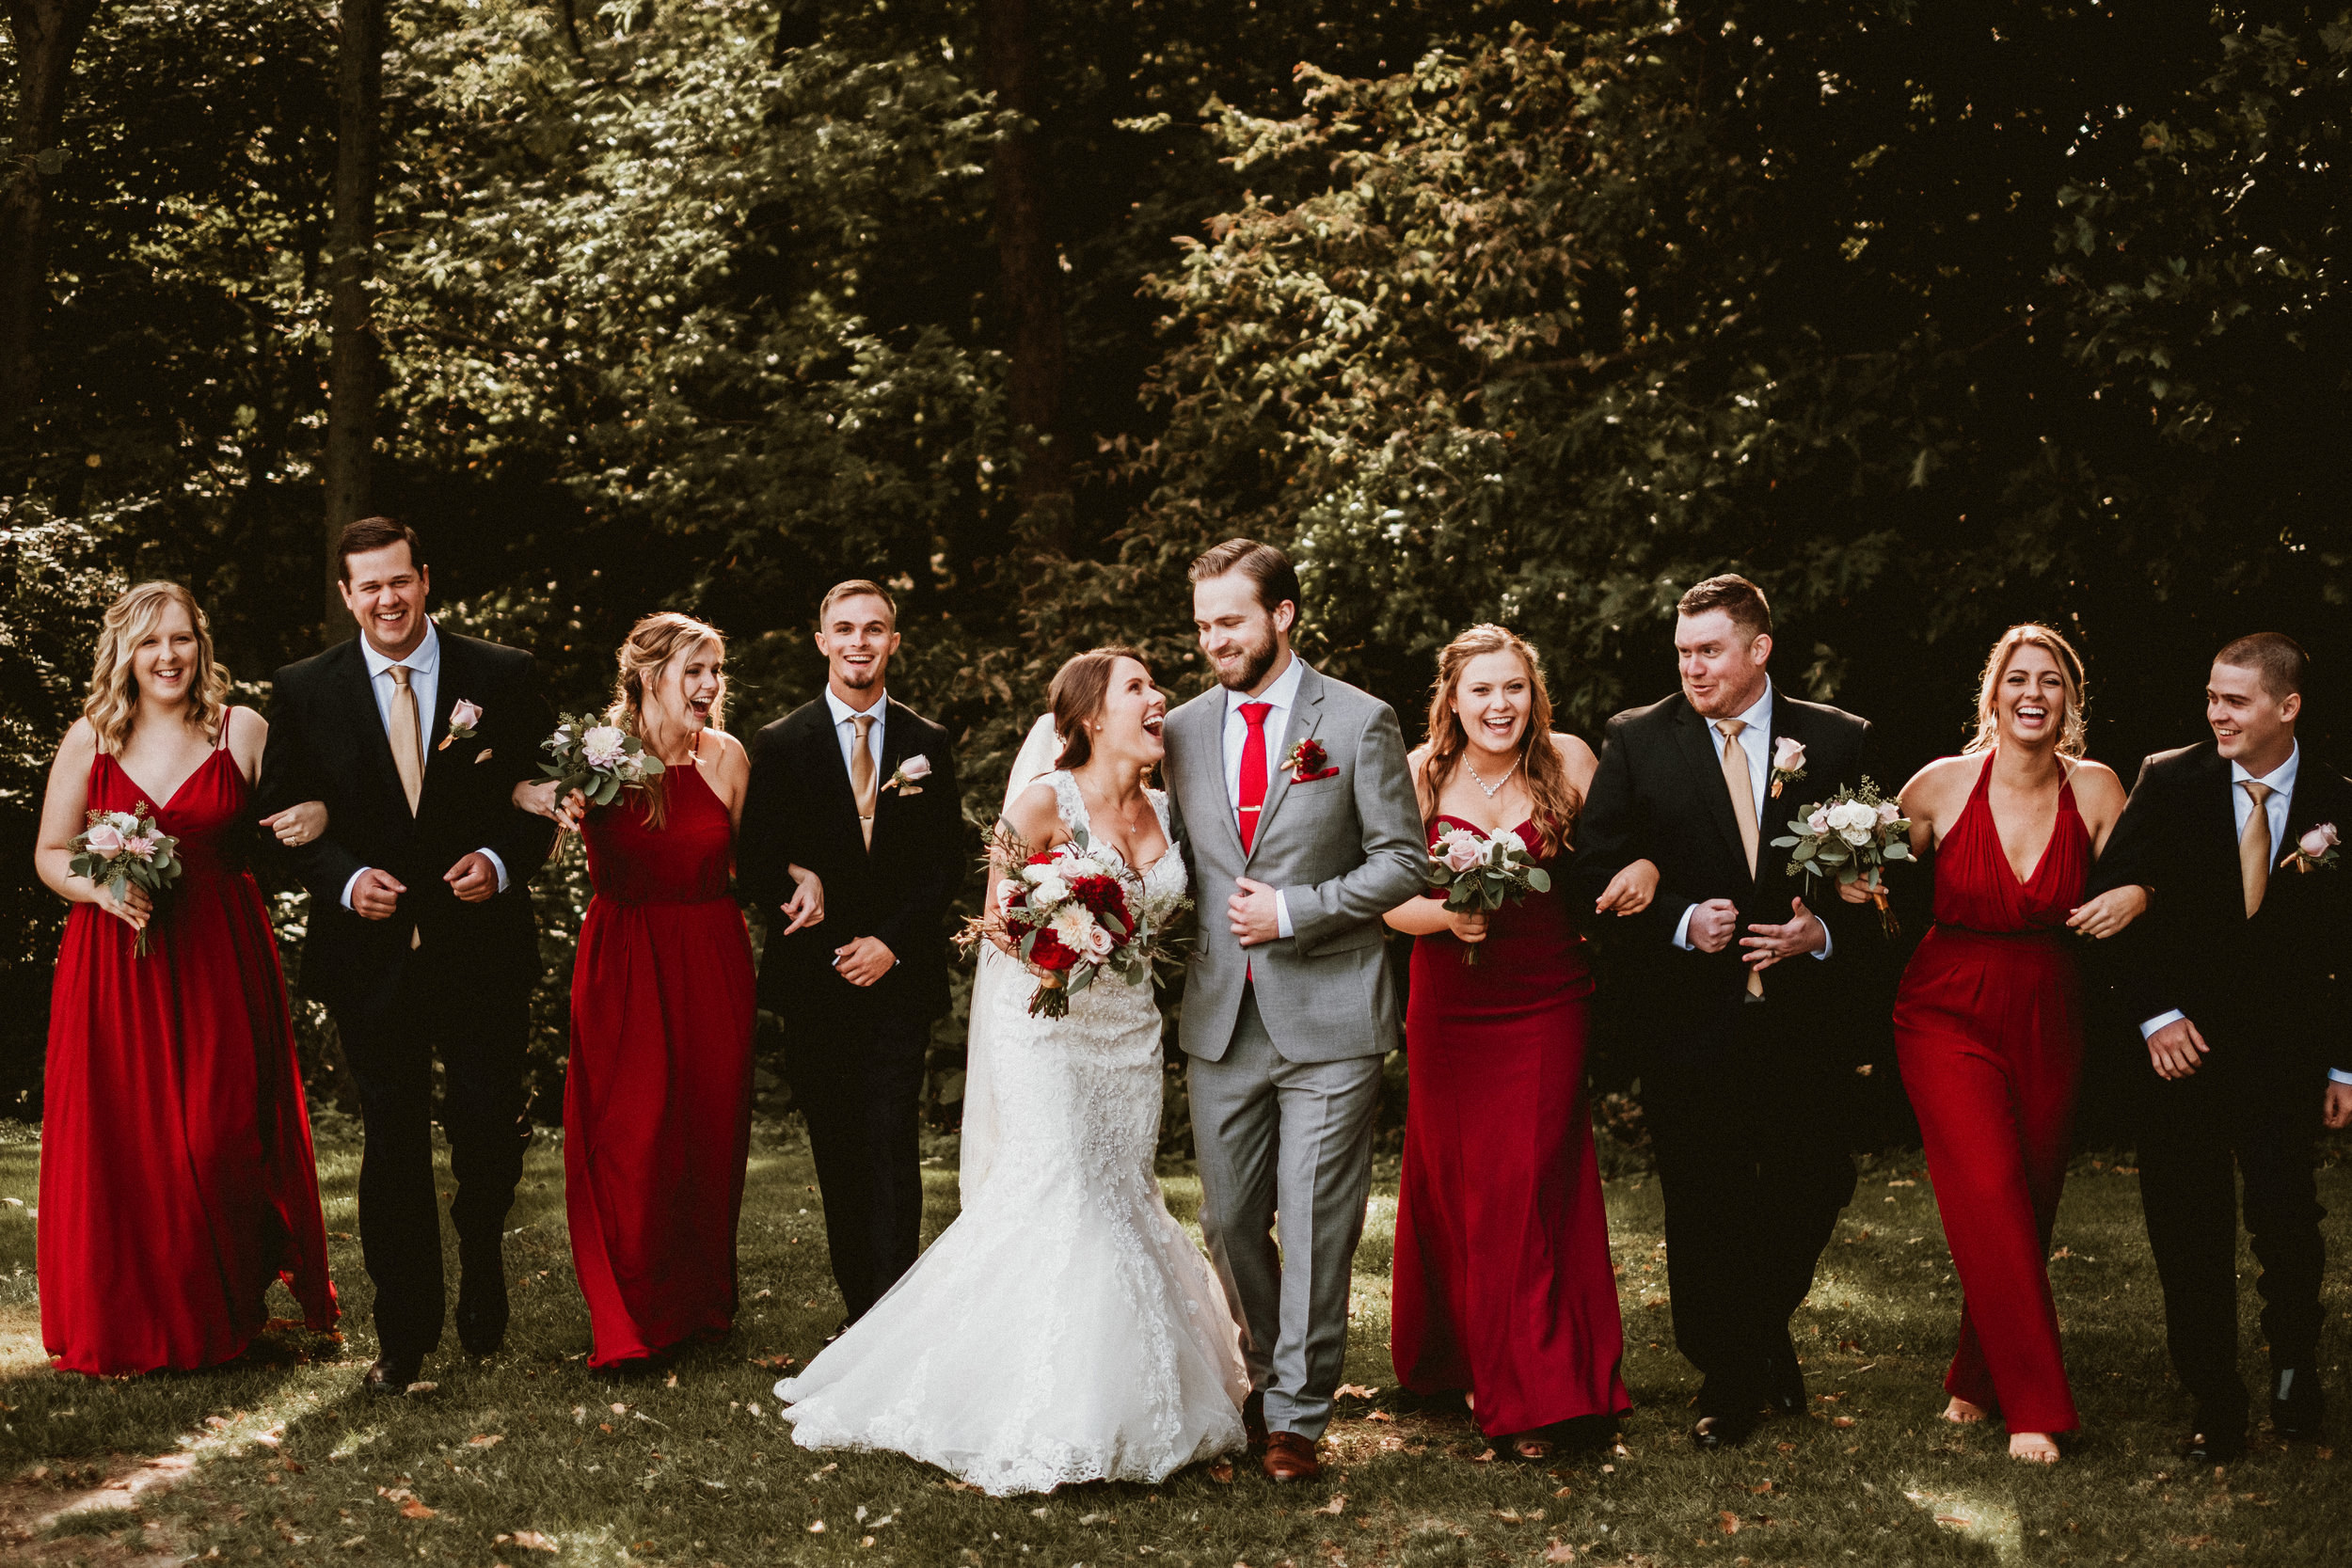 Bridal Party Walking Fall Wedding Burgundy.jpg